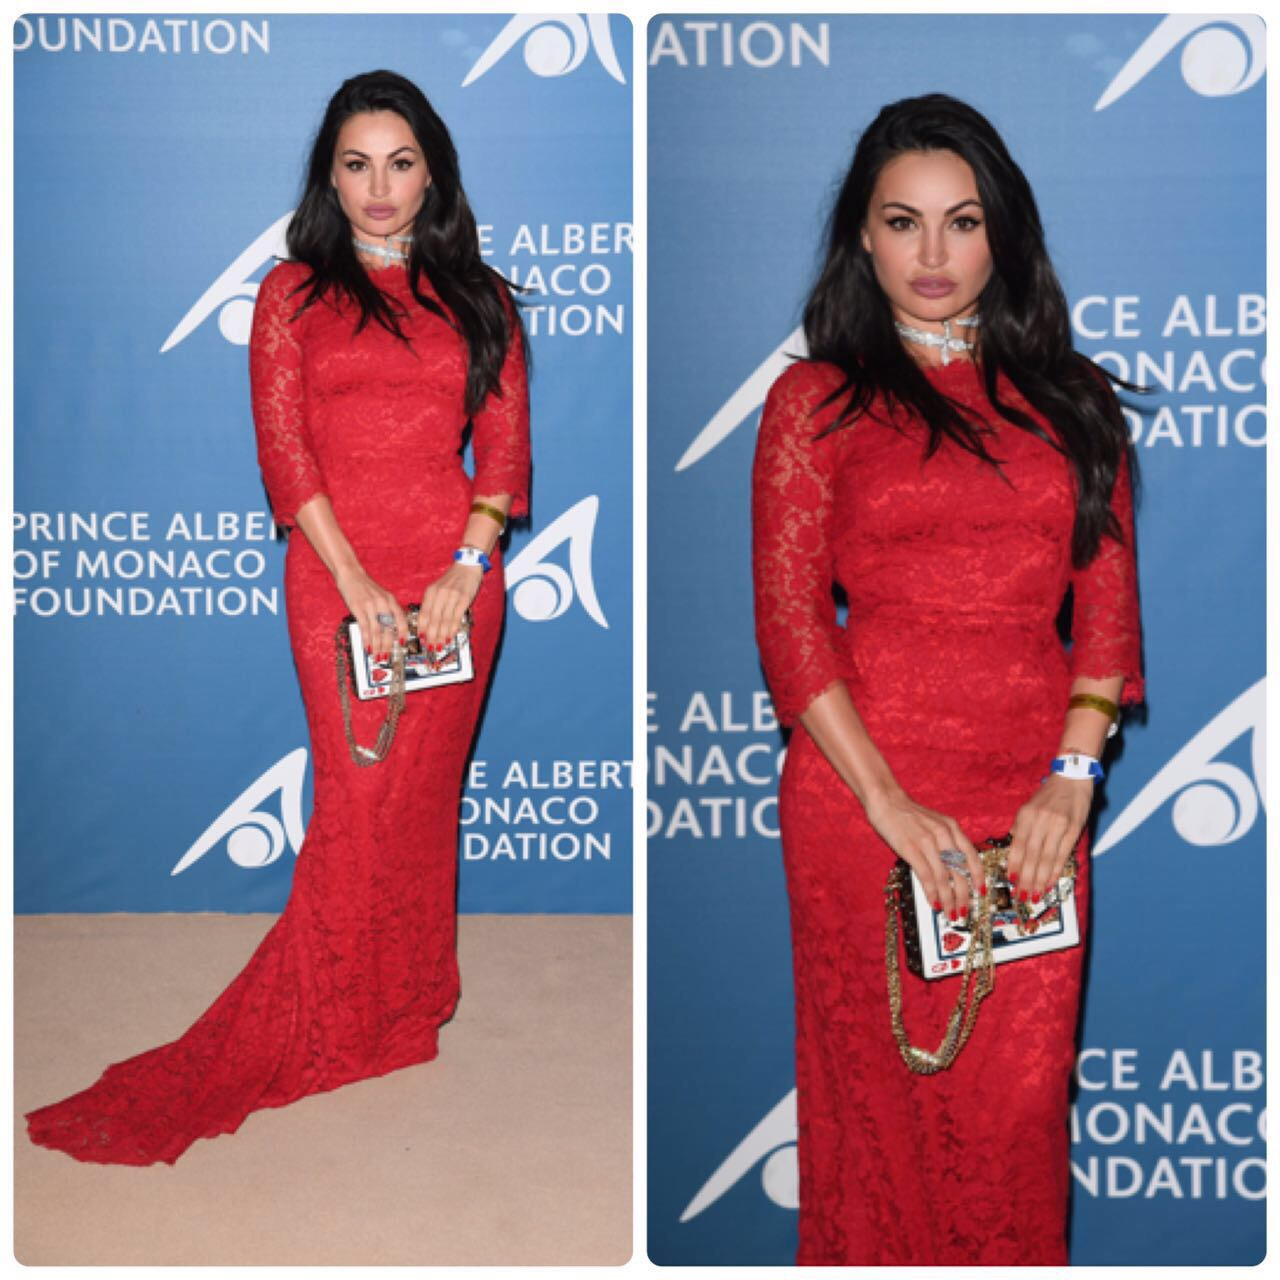 Emilia Kazandjian at the Charity Ball of Prince Albert II in Monaco